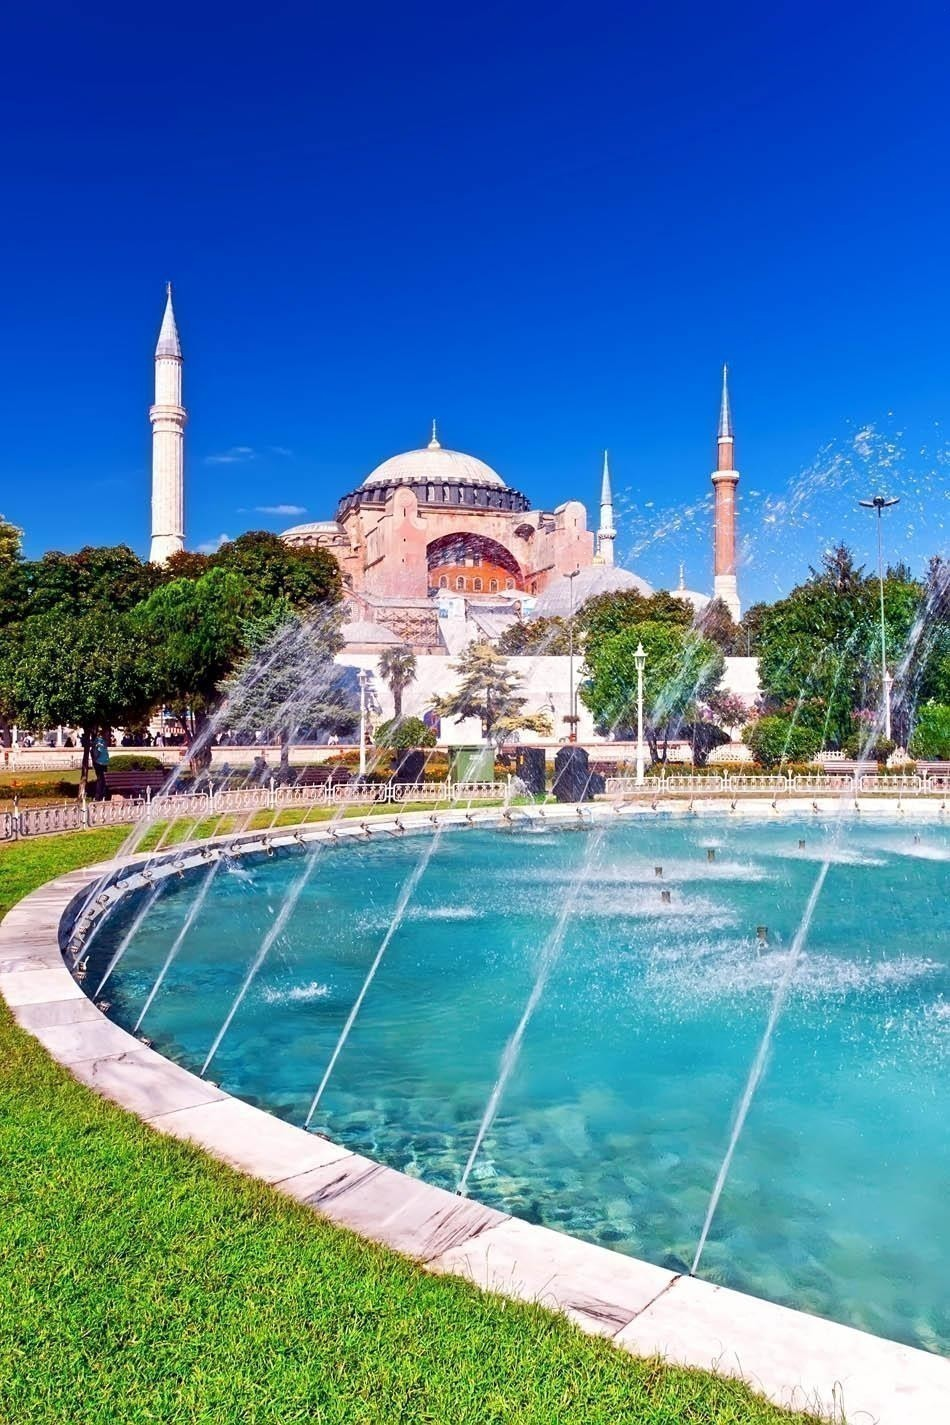 Beautiful View of Hagia Sophia in Istanbul, Turkey | Turkey Travel Guide